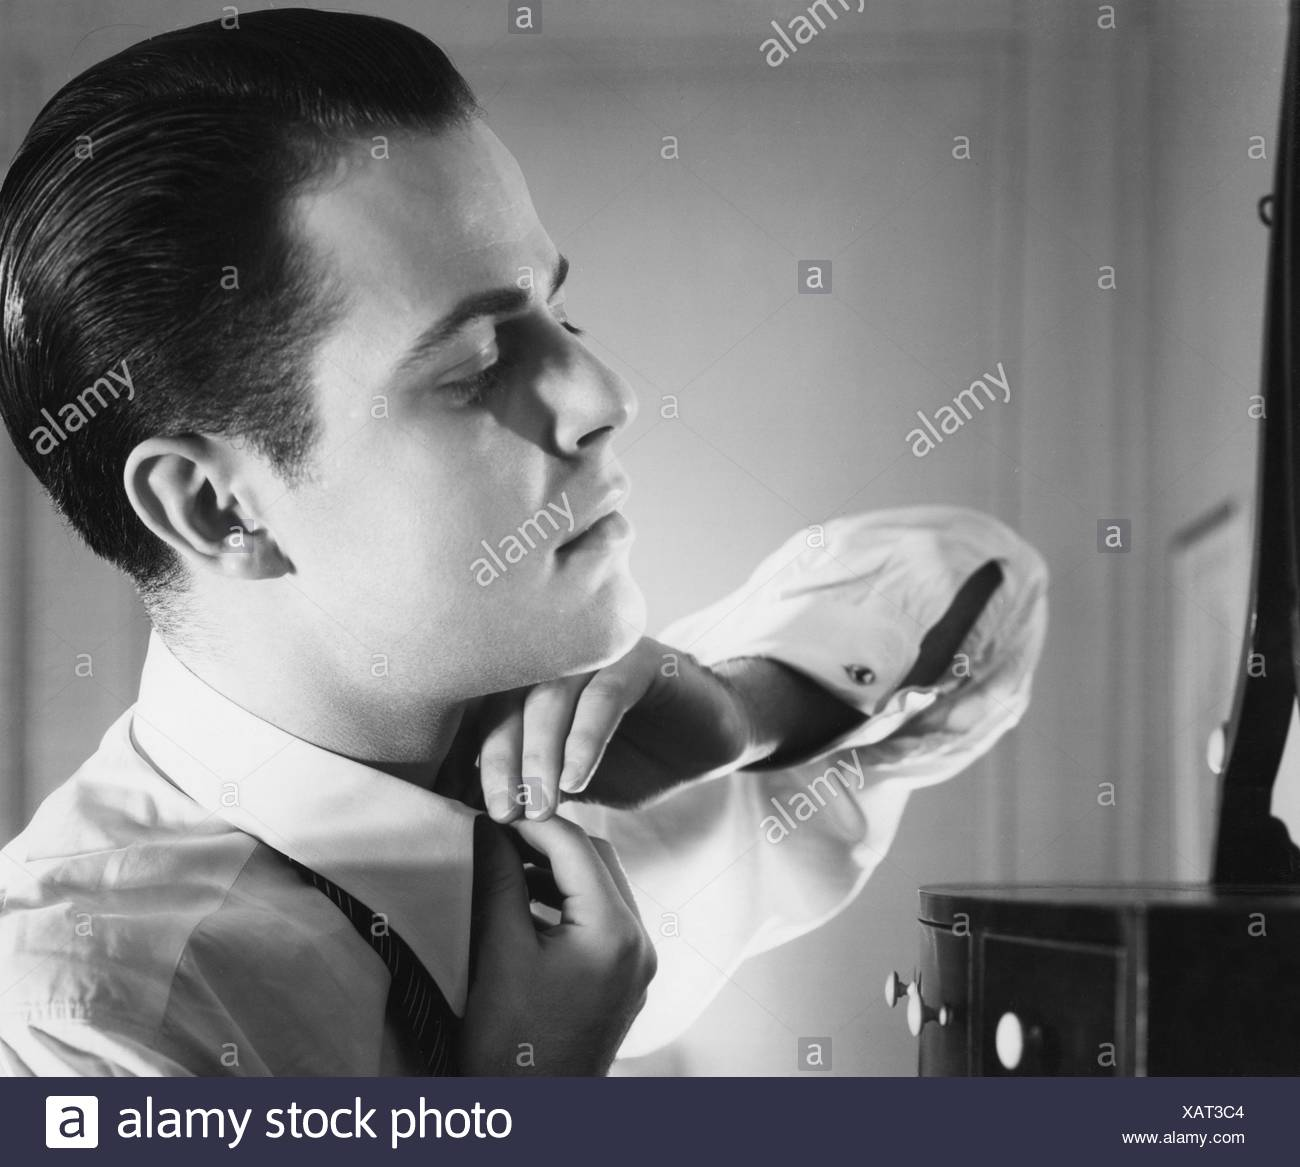 people, men, portrait / half length - 60s, man buttoning up his shirt, 1960s, Additional-Rights-Clearences-NA - Stock Image